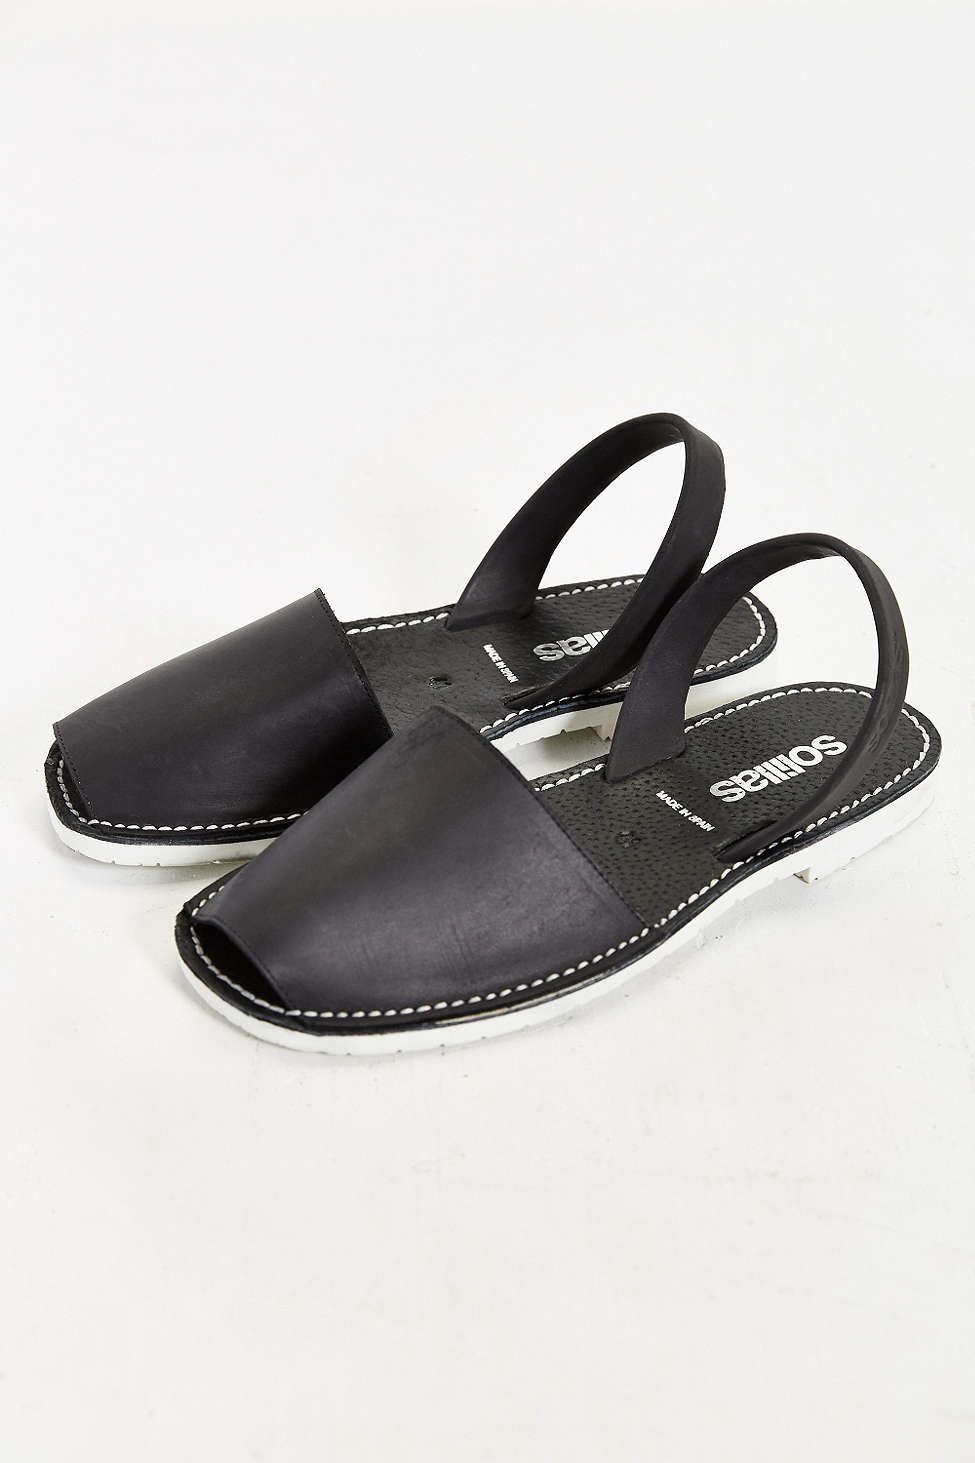 b5a732c06521 Solillas Negro Mens Sandal - Urban Outfitters